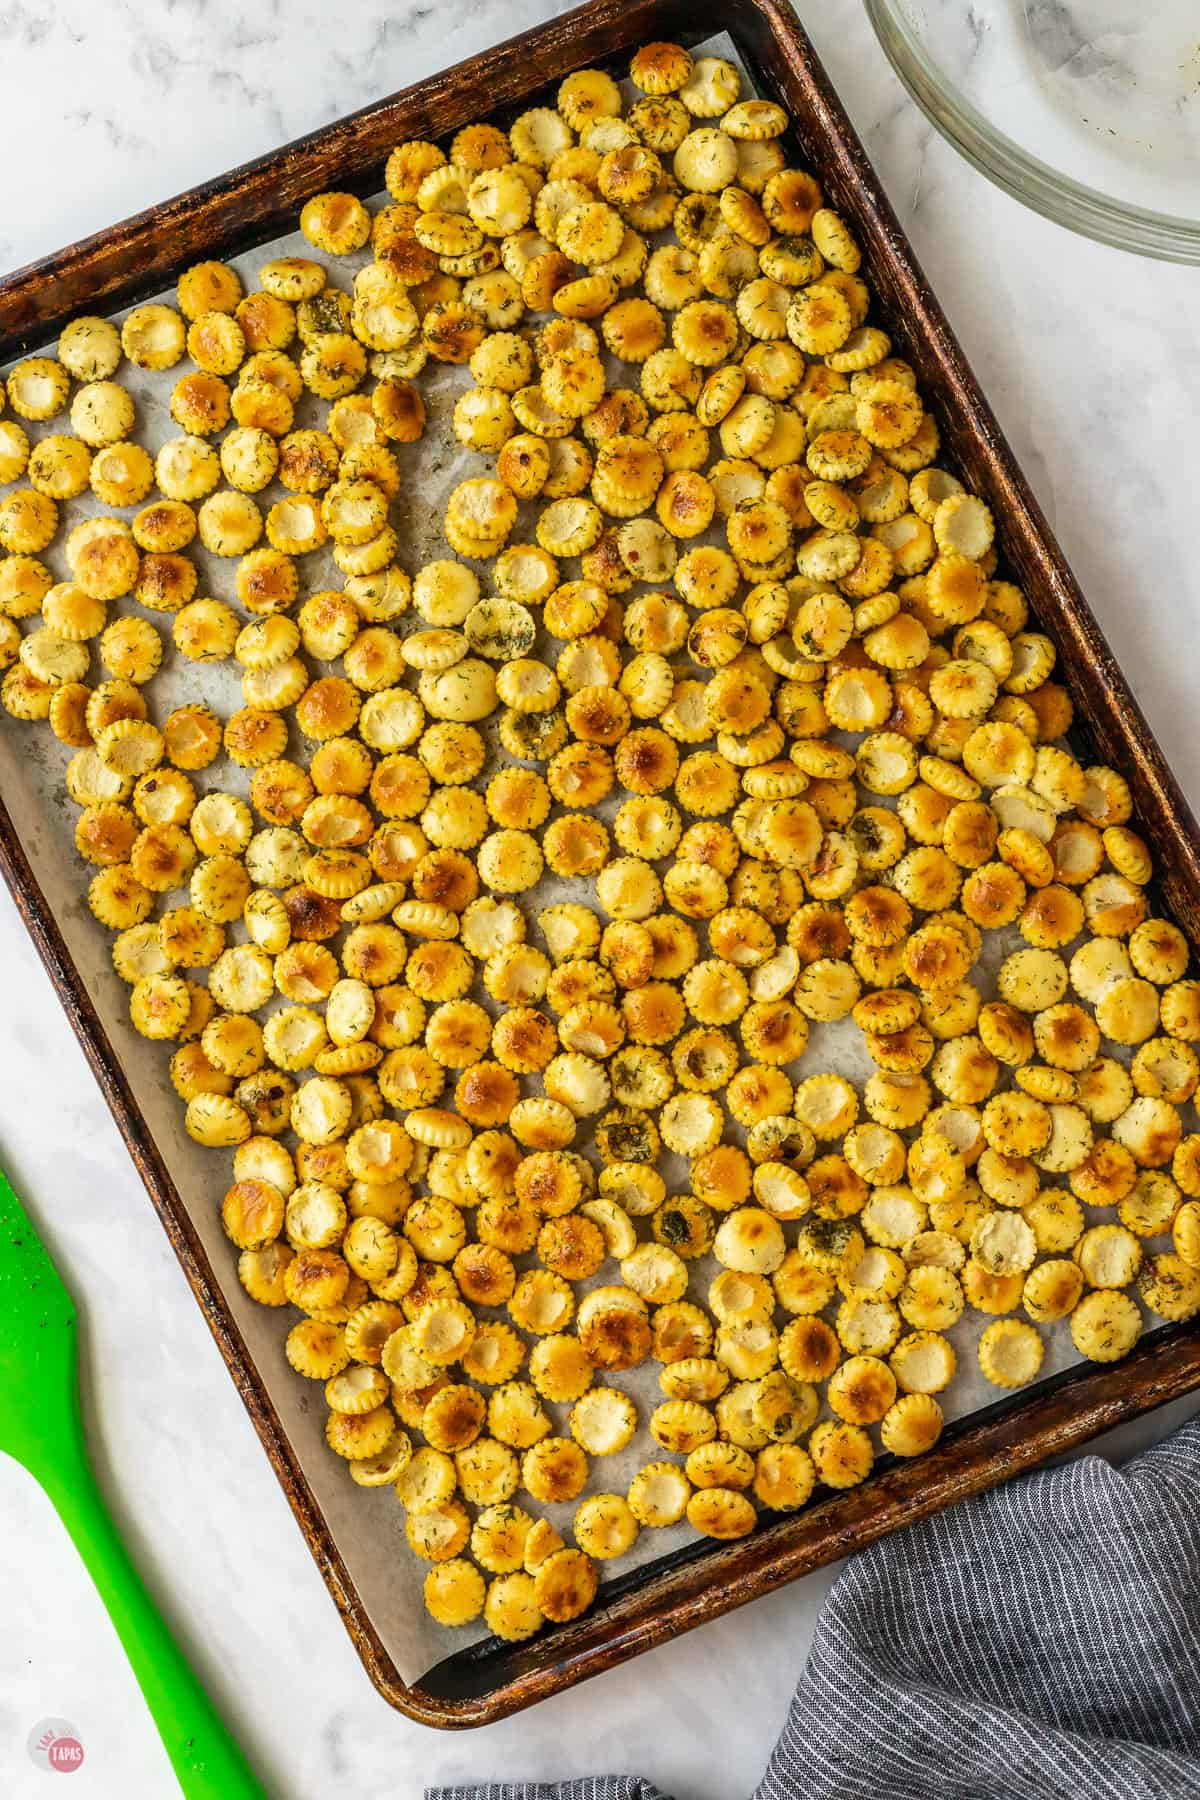 oyster crackers on a baking sheet